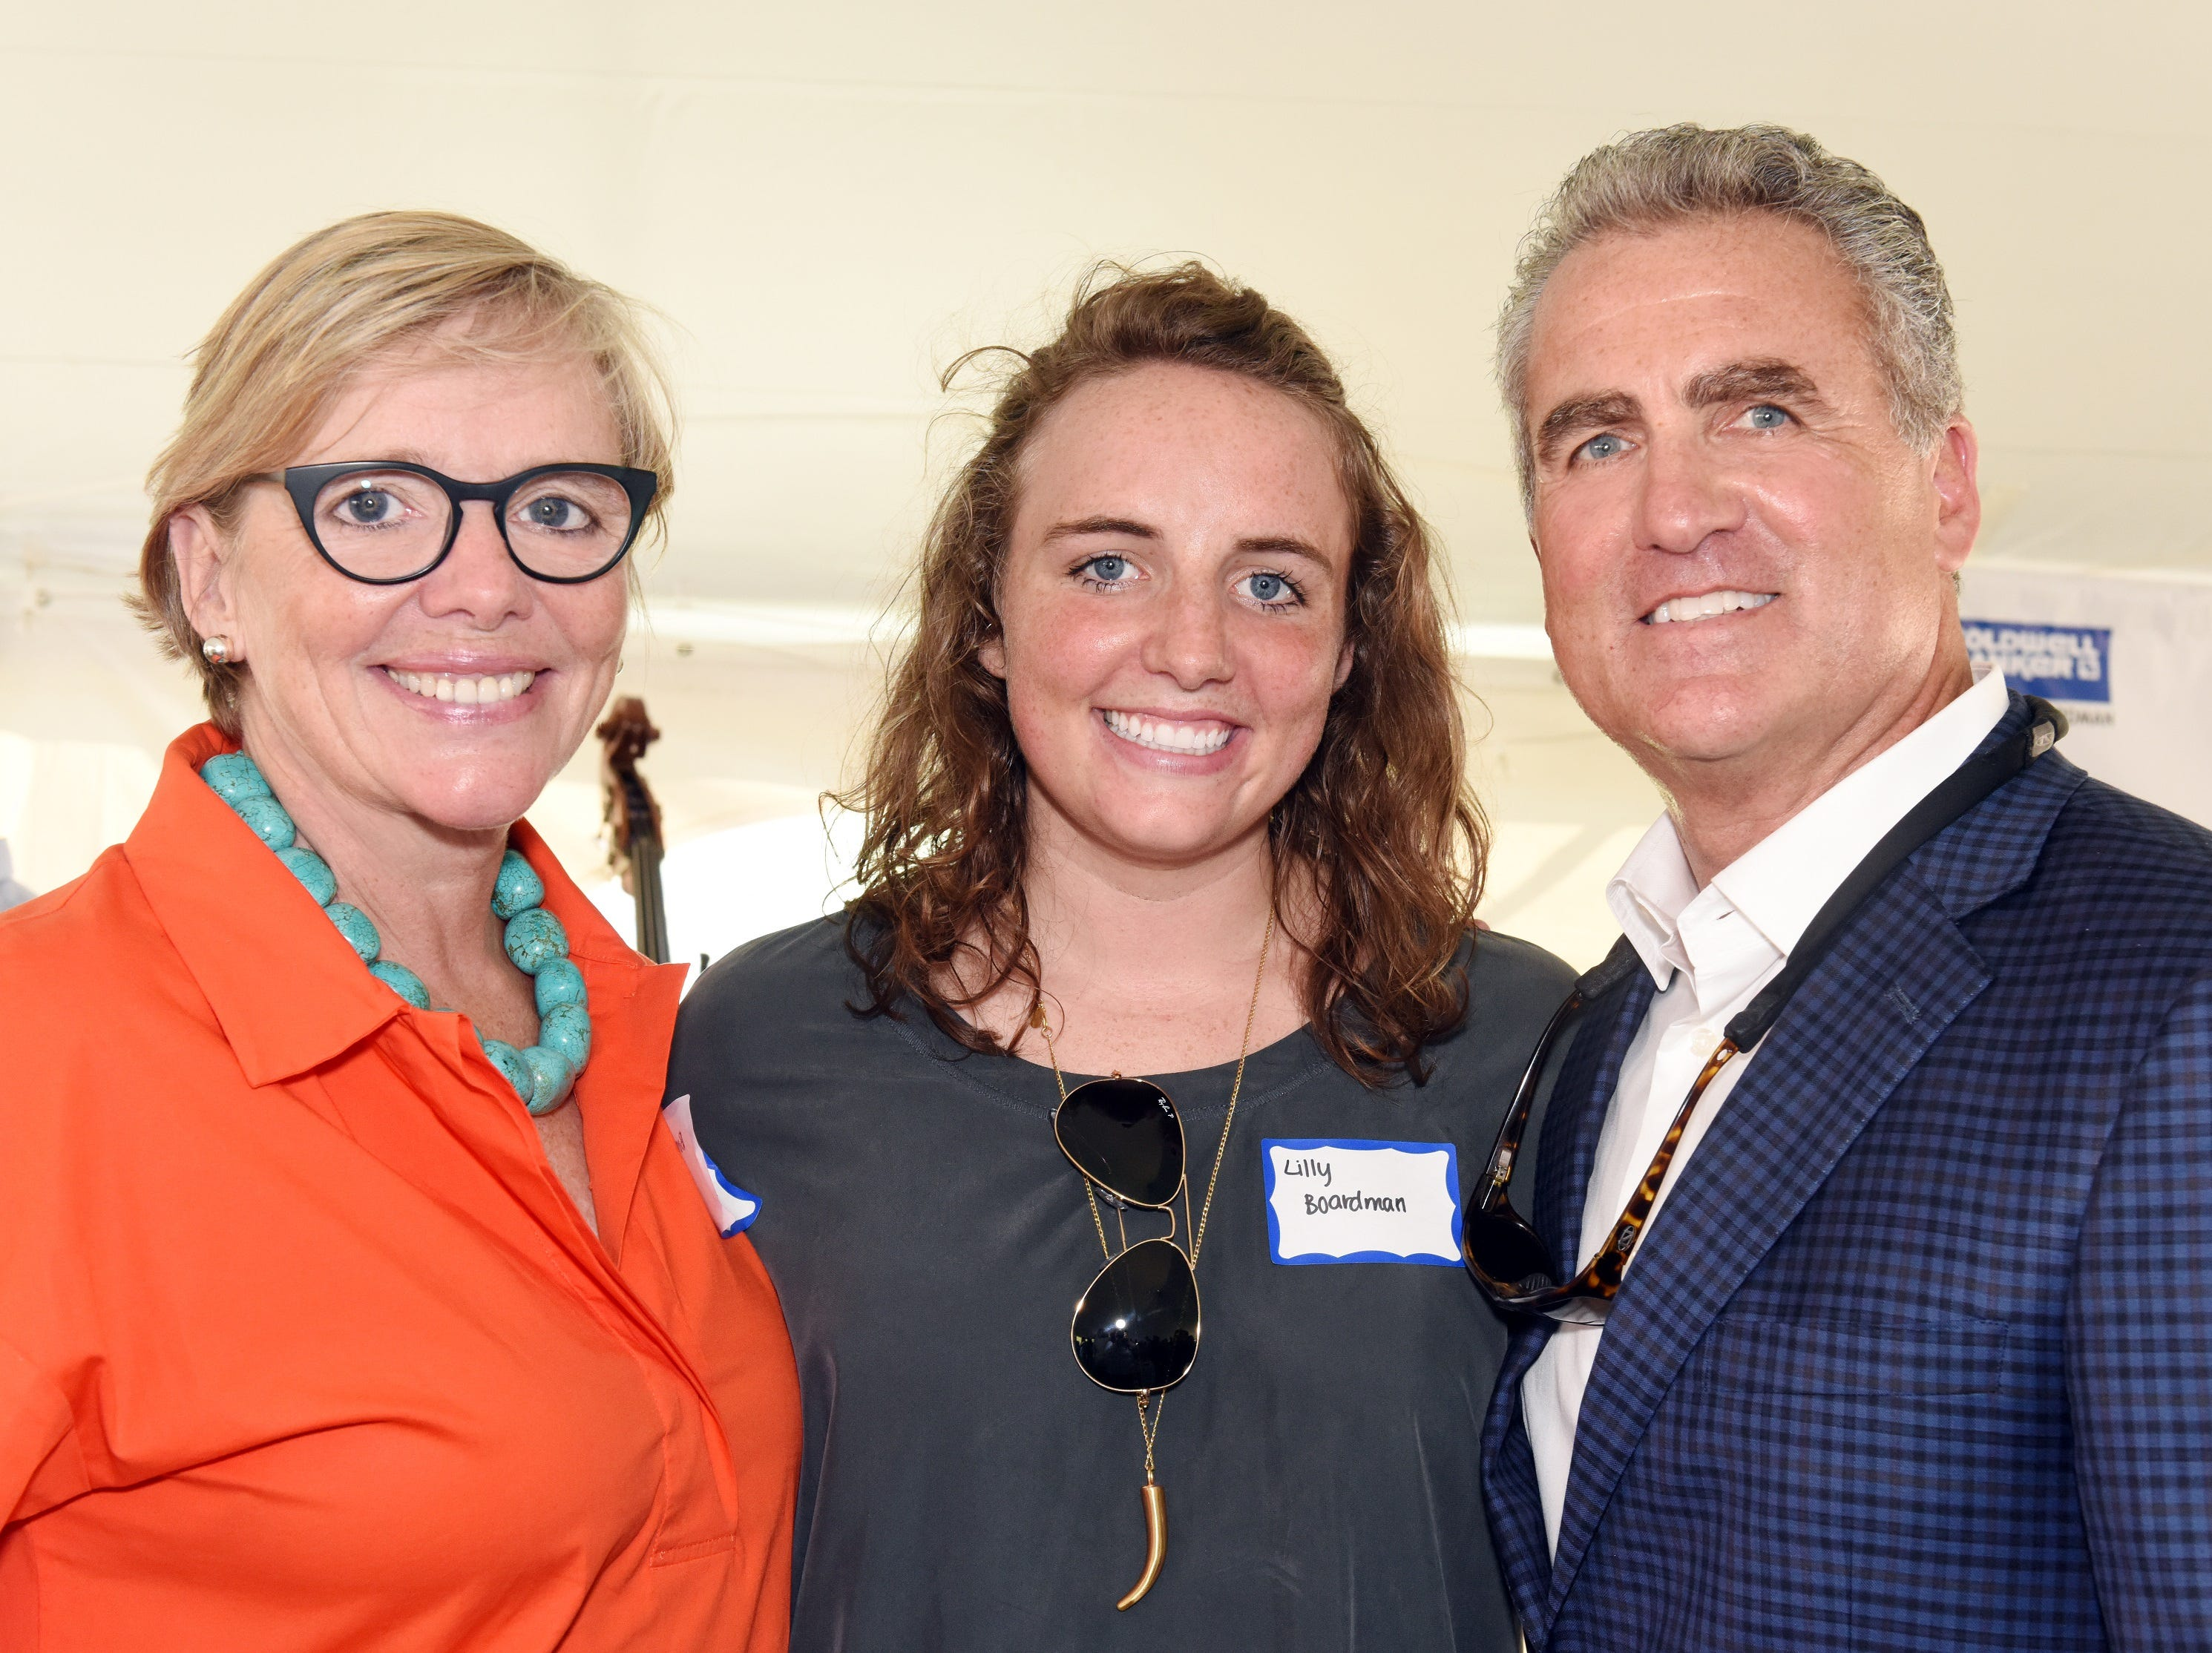 Brooks Boardman, Lilly Boardman, and Brian Boardman, attend the Coldwell Banker Hickok & Boardman 60th Anniversary on September 13, 2018, with current and past agents and community leaders in Burlington, VT.